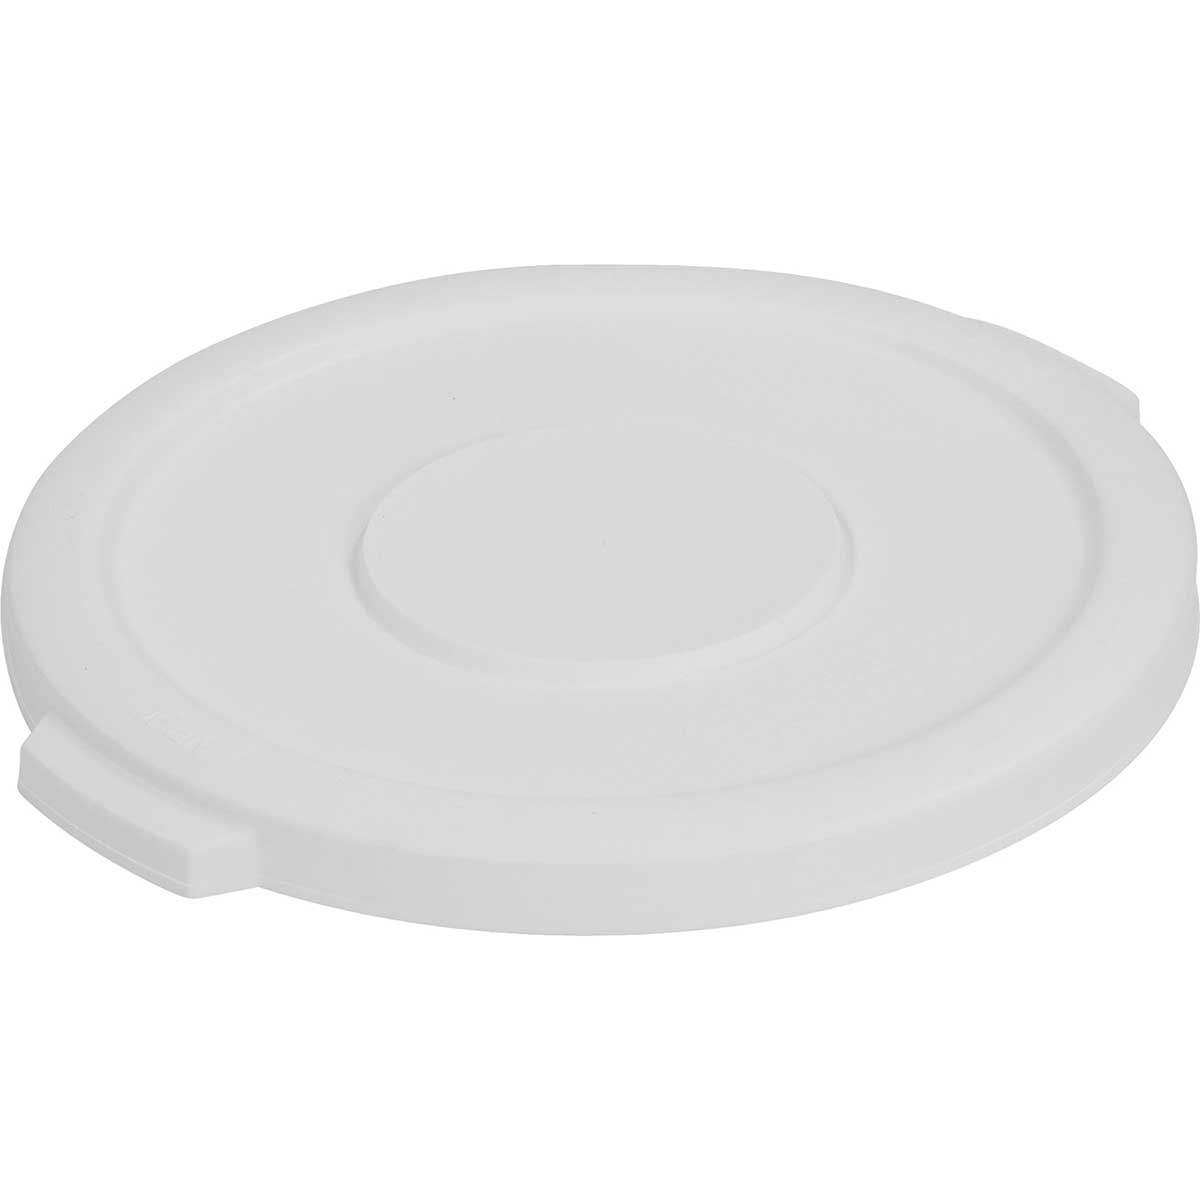 Lid for 20-Gallon Bronco Round Trash Can, Pack of 6